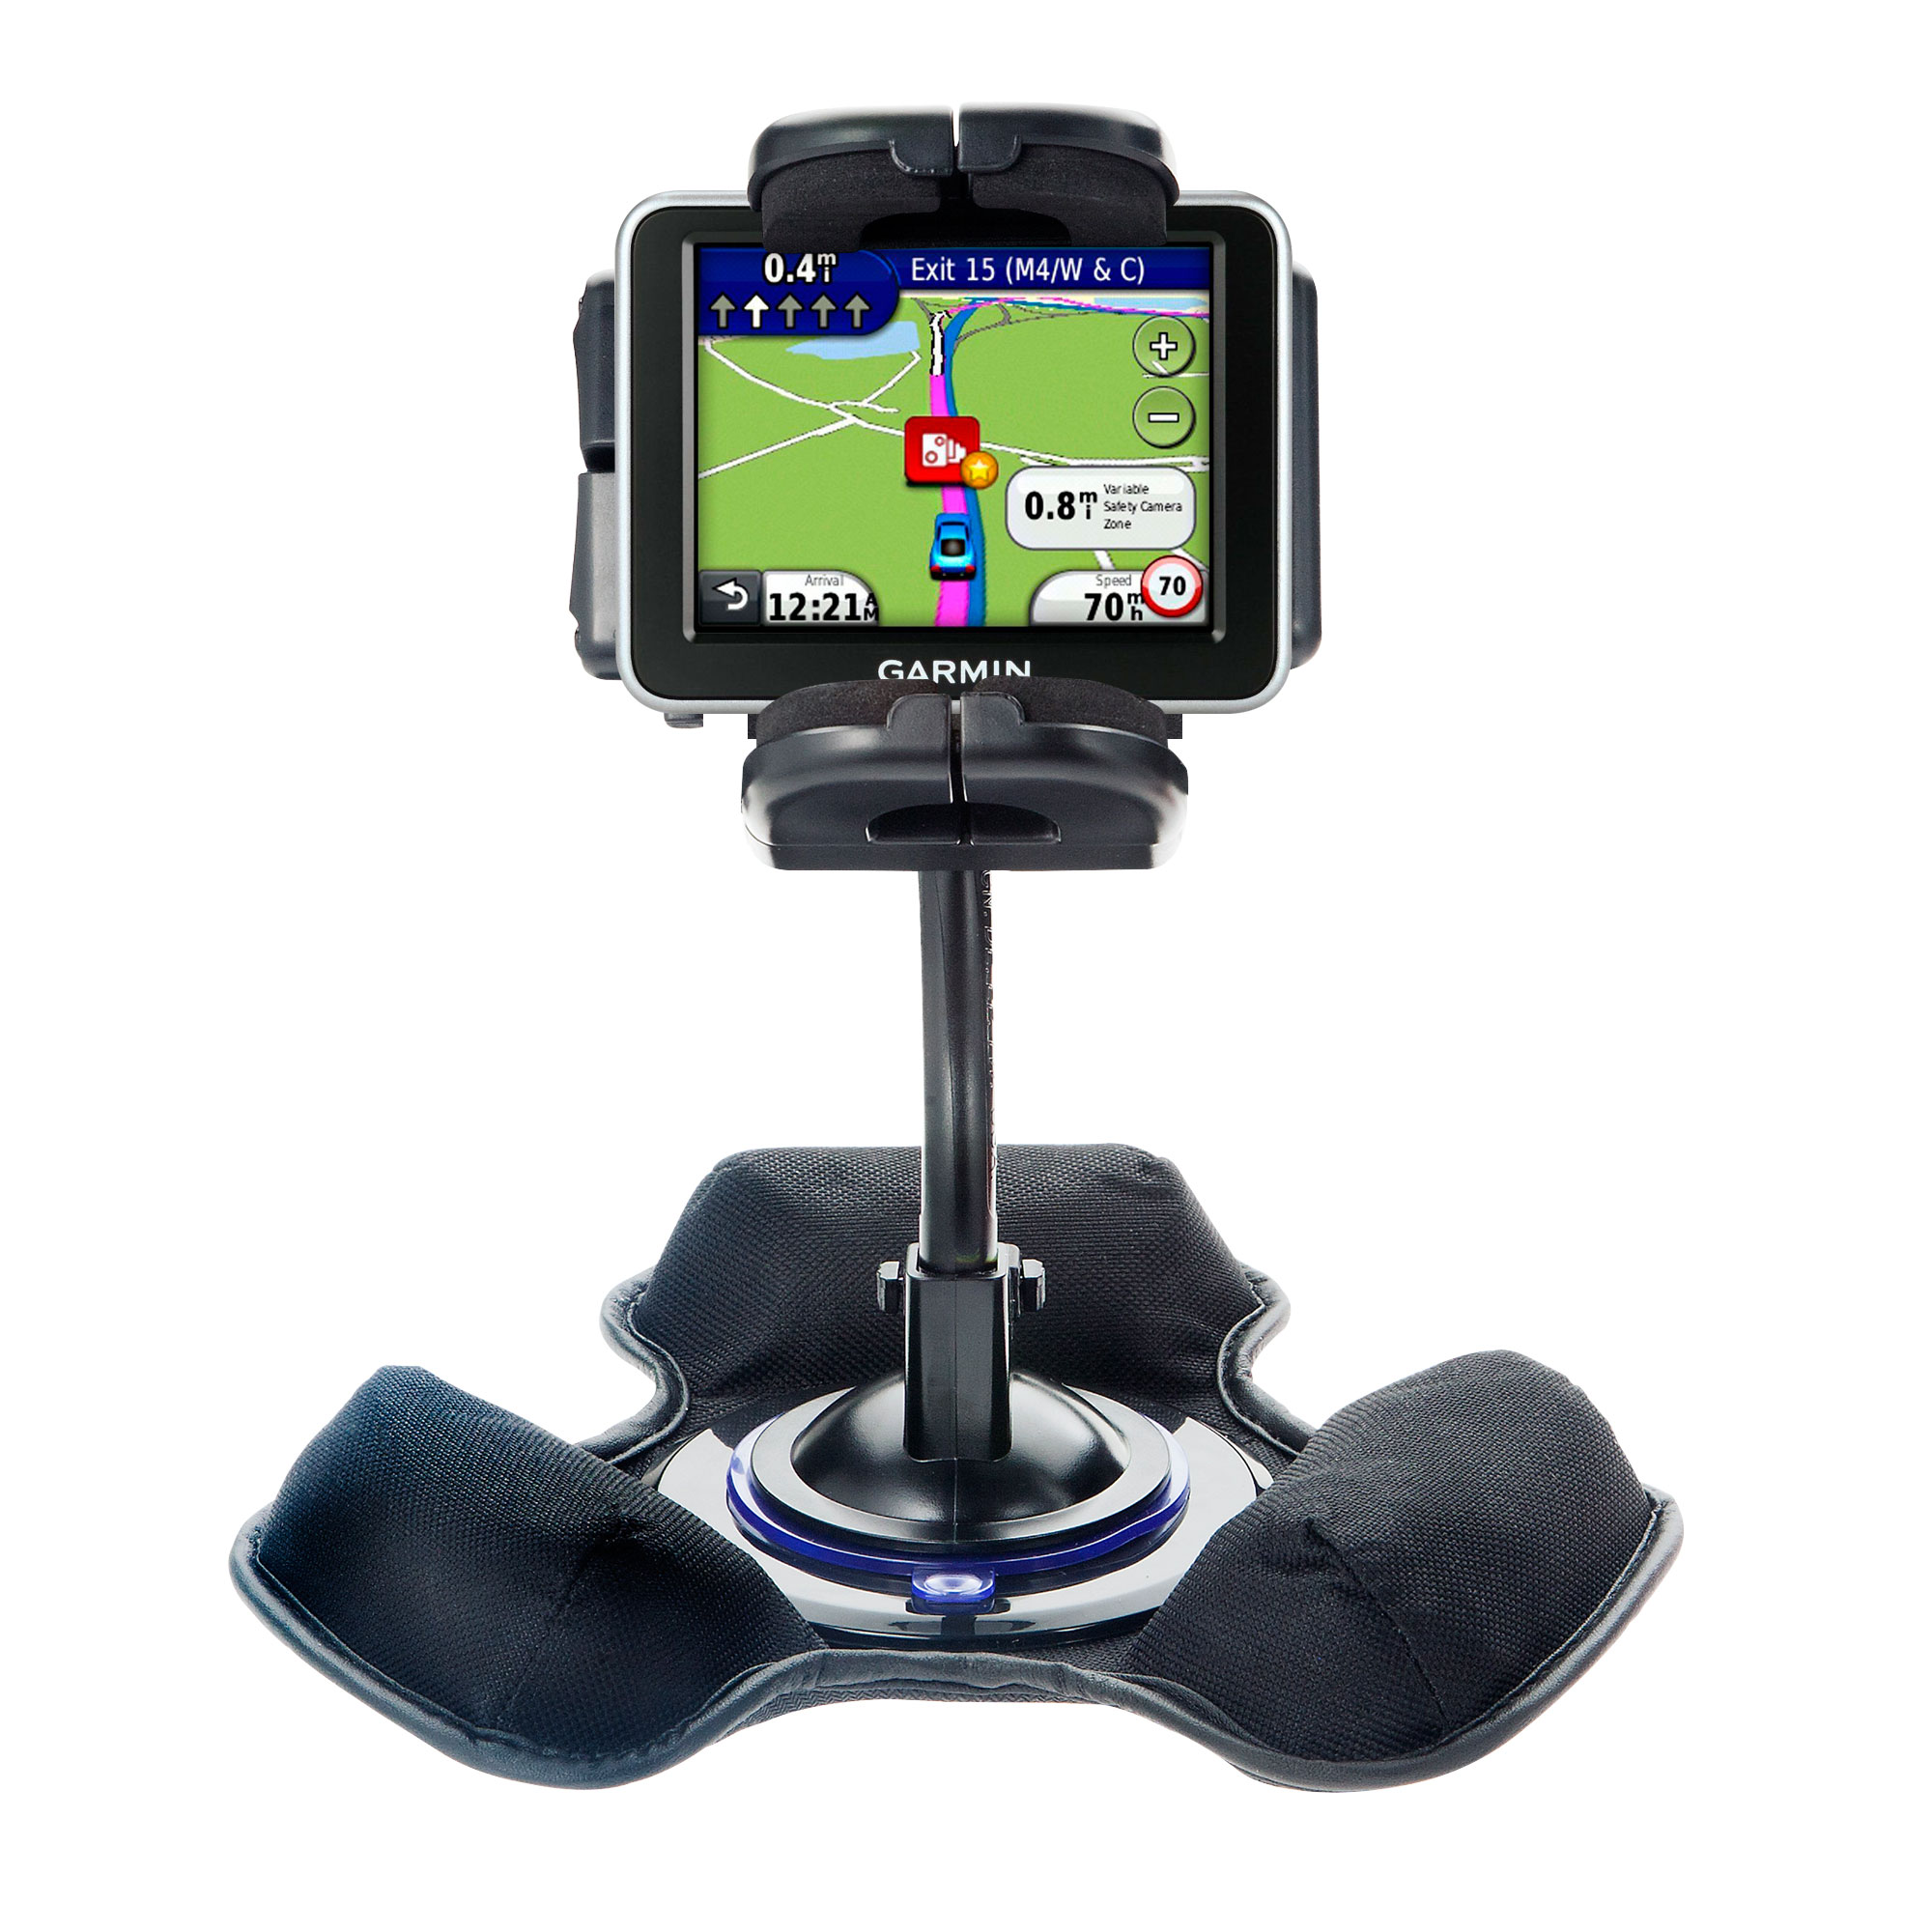 Dash and Windshield Holder compatible with the Garmin Nuvi 2240